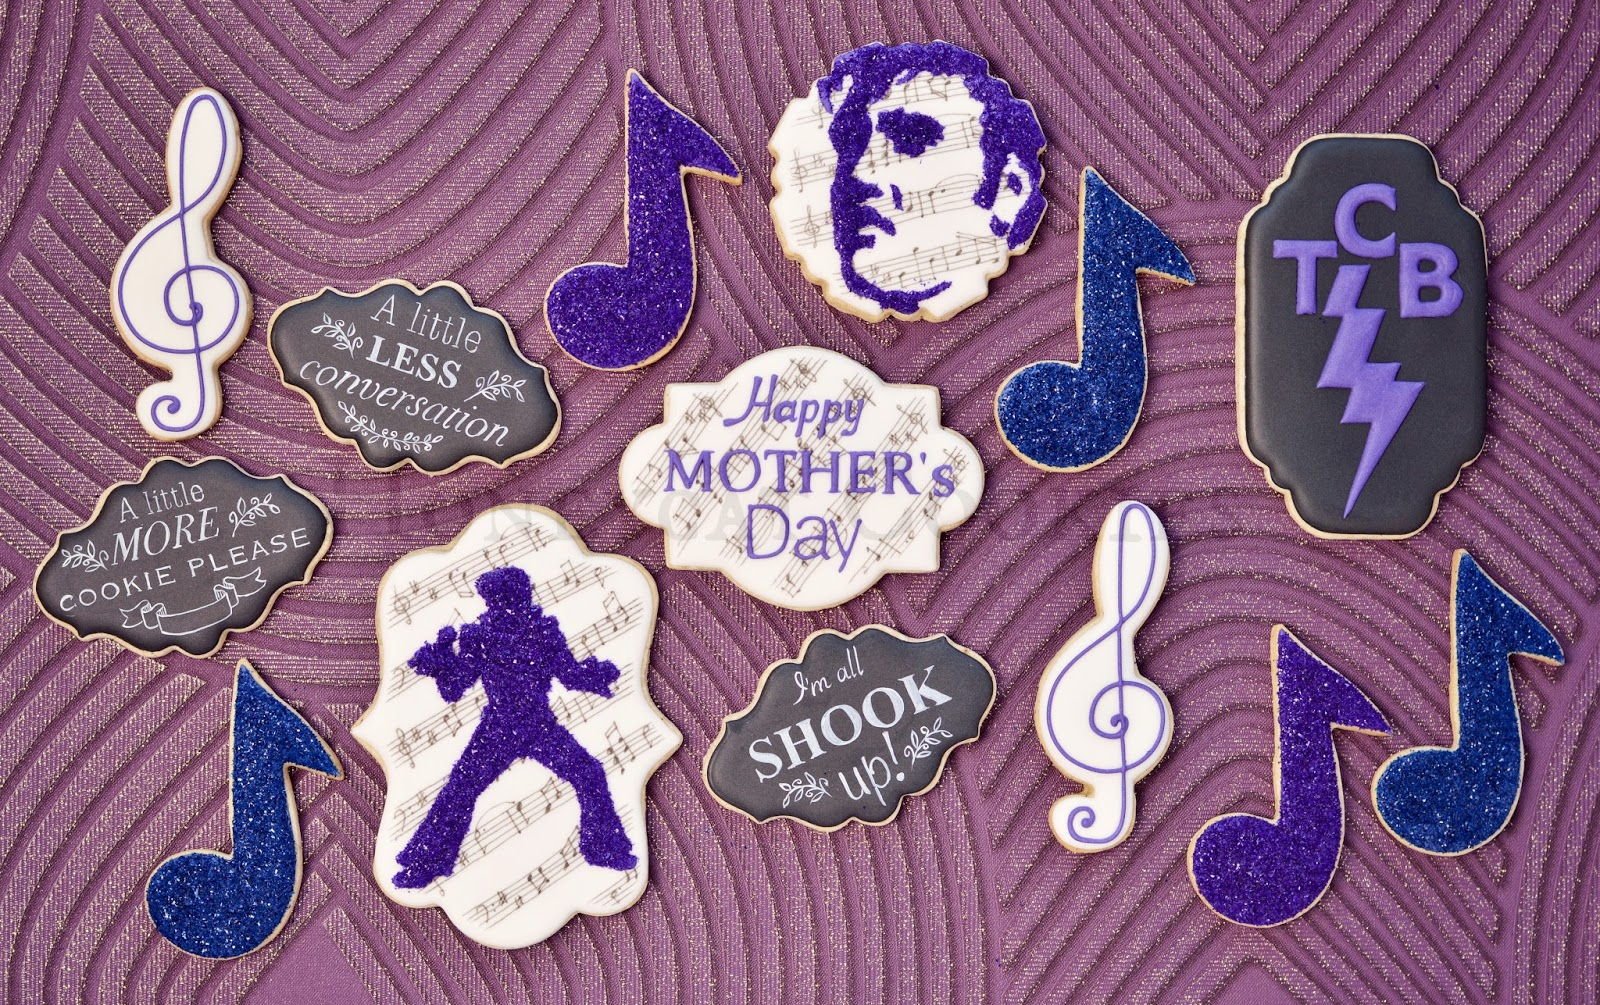 Full set of Elvis inspired Mother's Day cookies with purple and blue edible glitters, by Honeycat Cookies